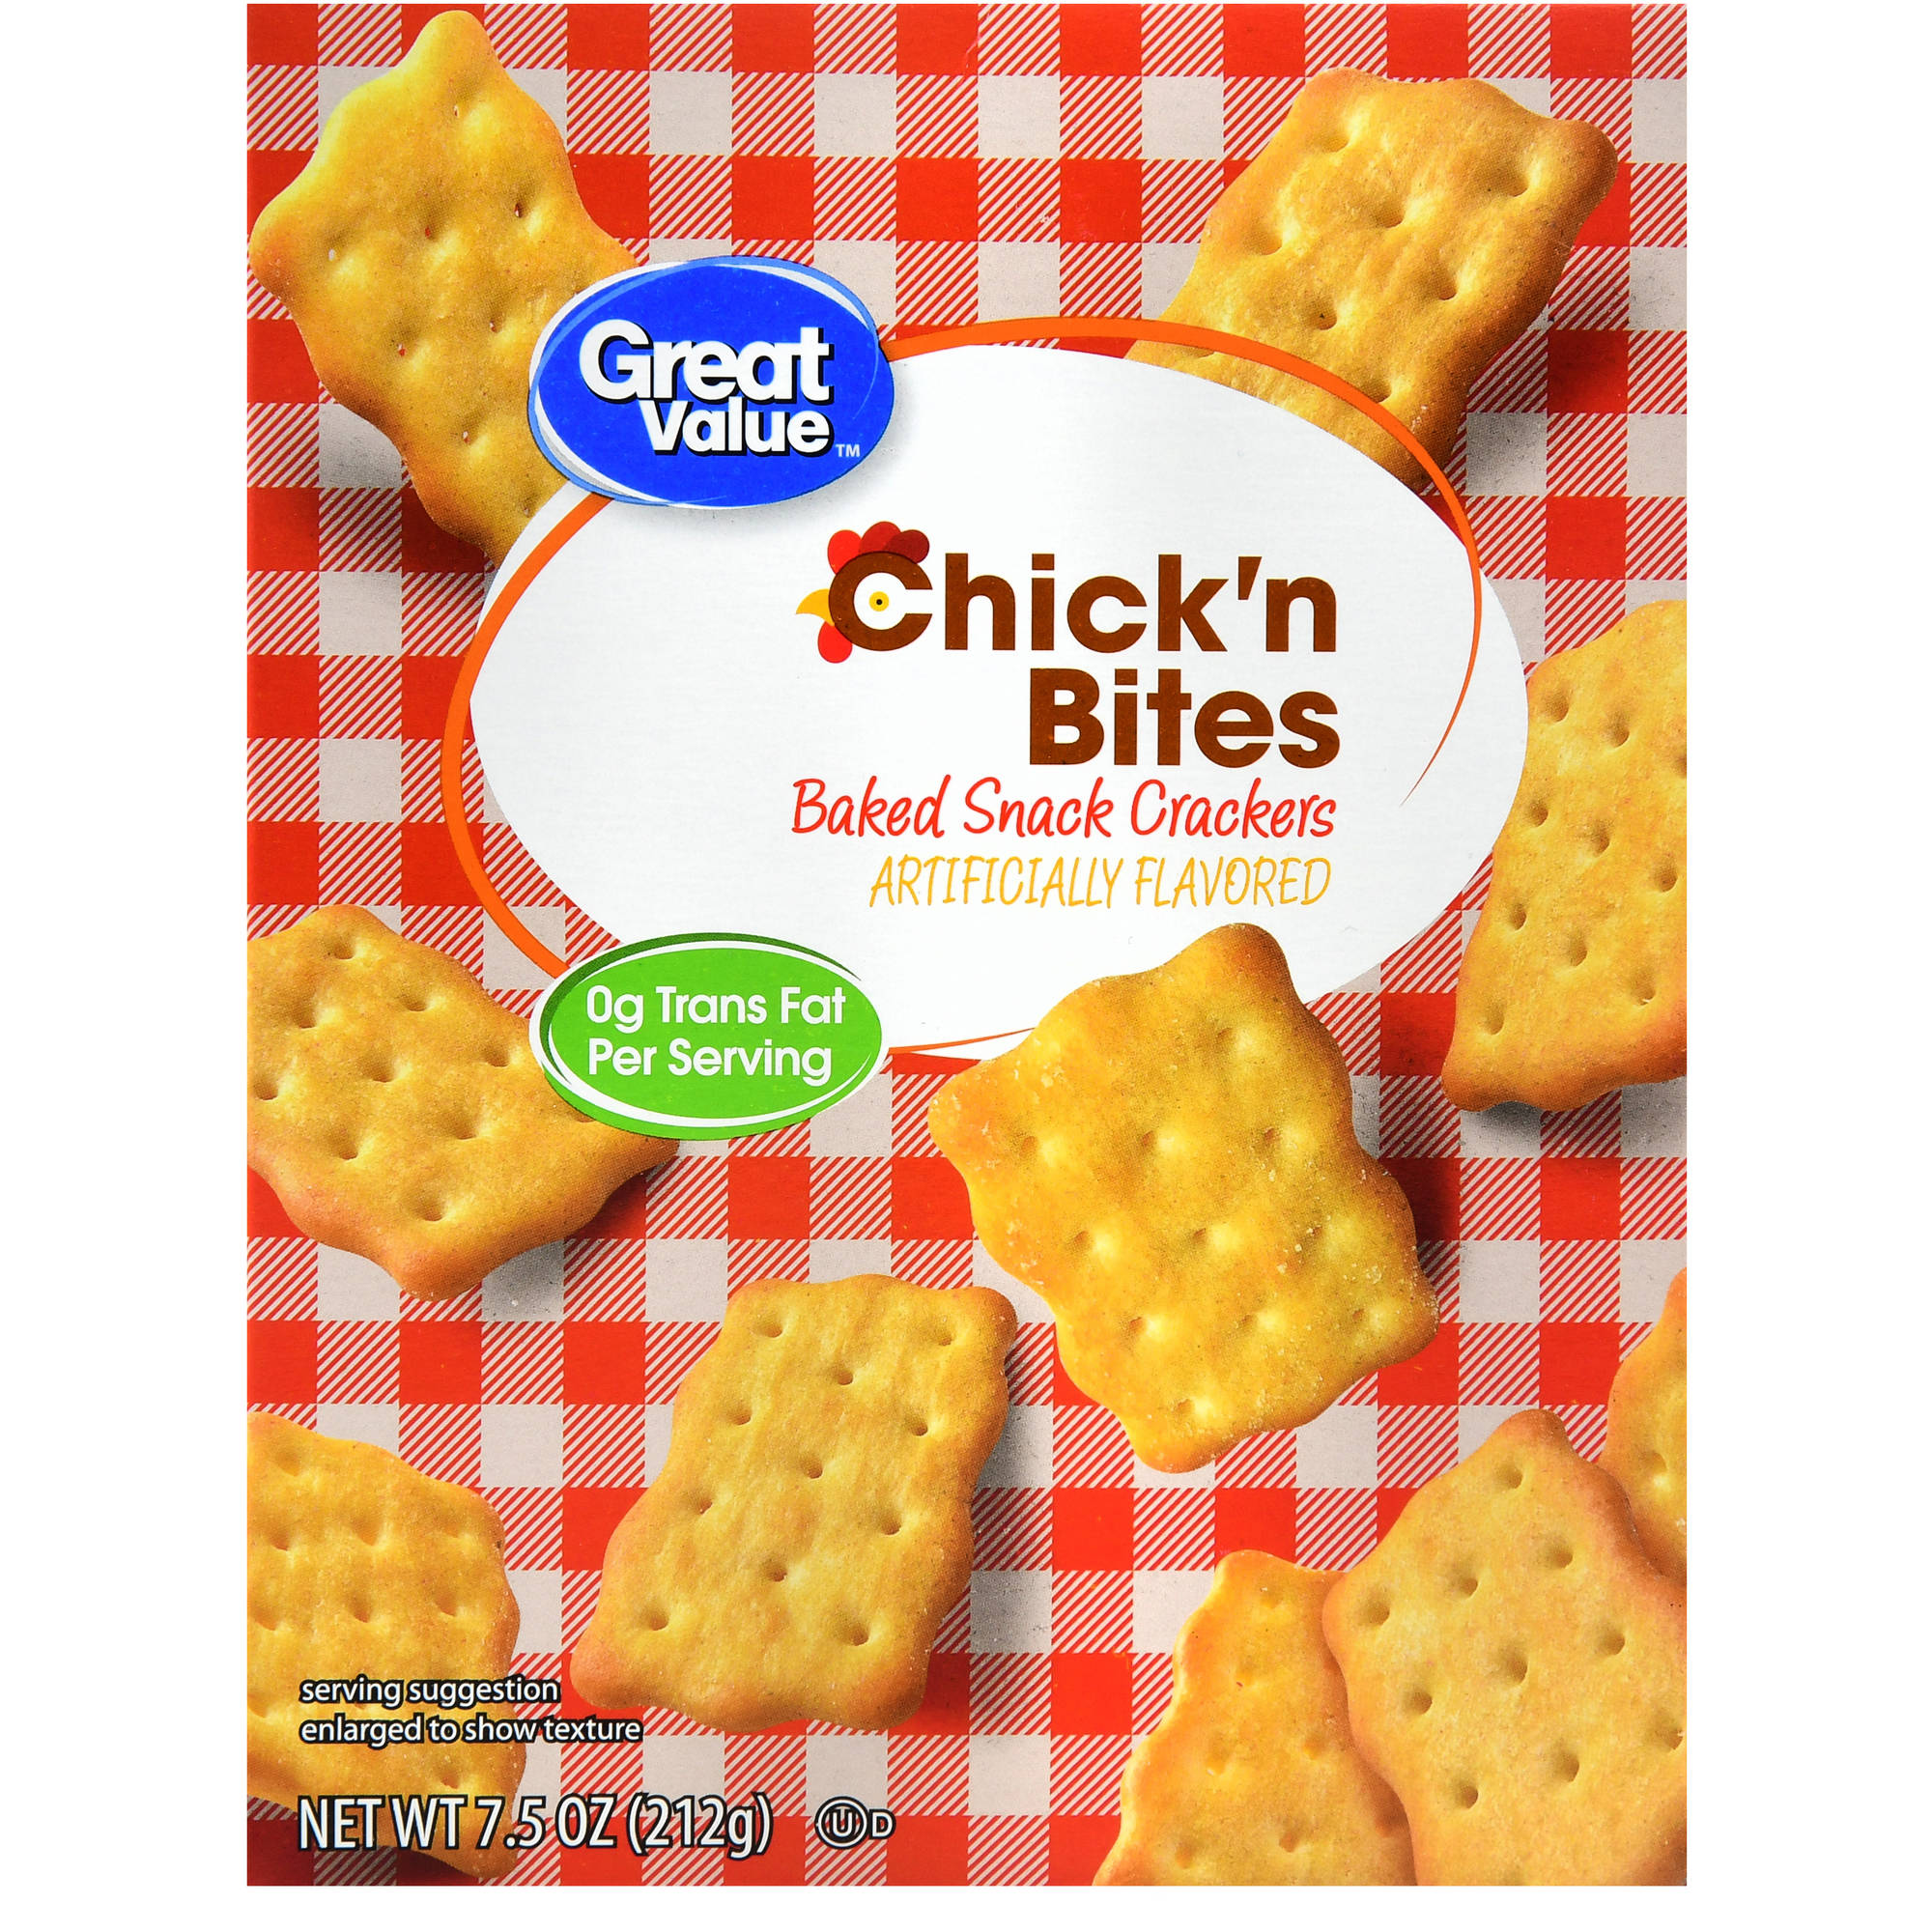 Great Value Chick' n Bites Crackers, 7.5 oz